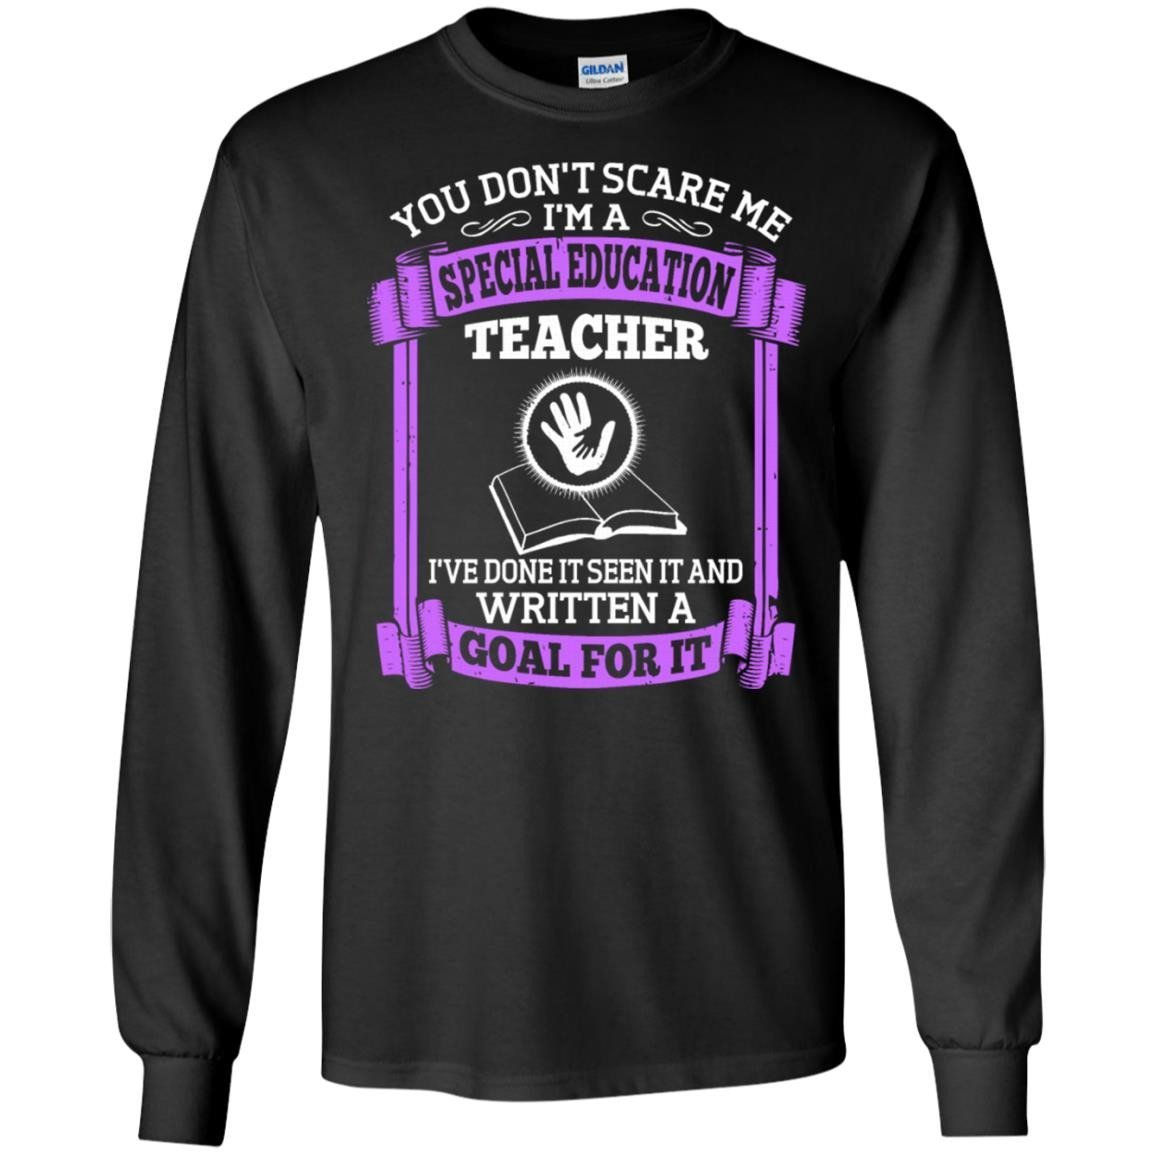 You Dont Scare Me I Am A Special Education Teacher T-Shirt Long Sleeve 240